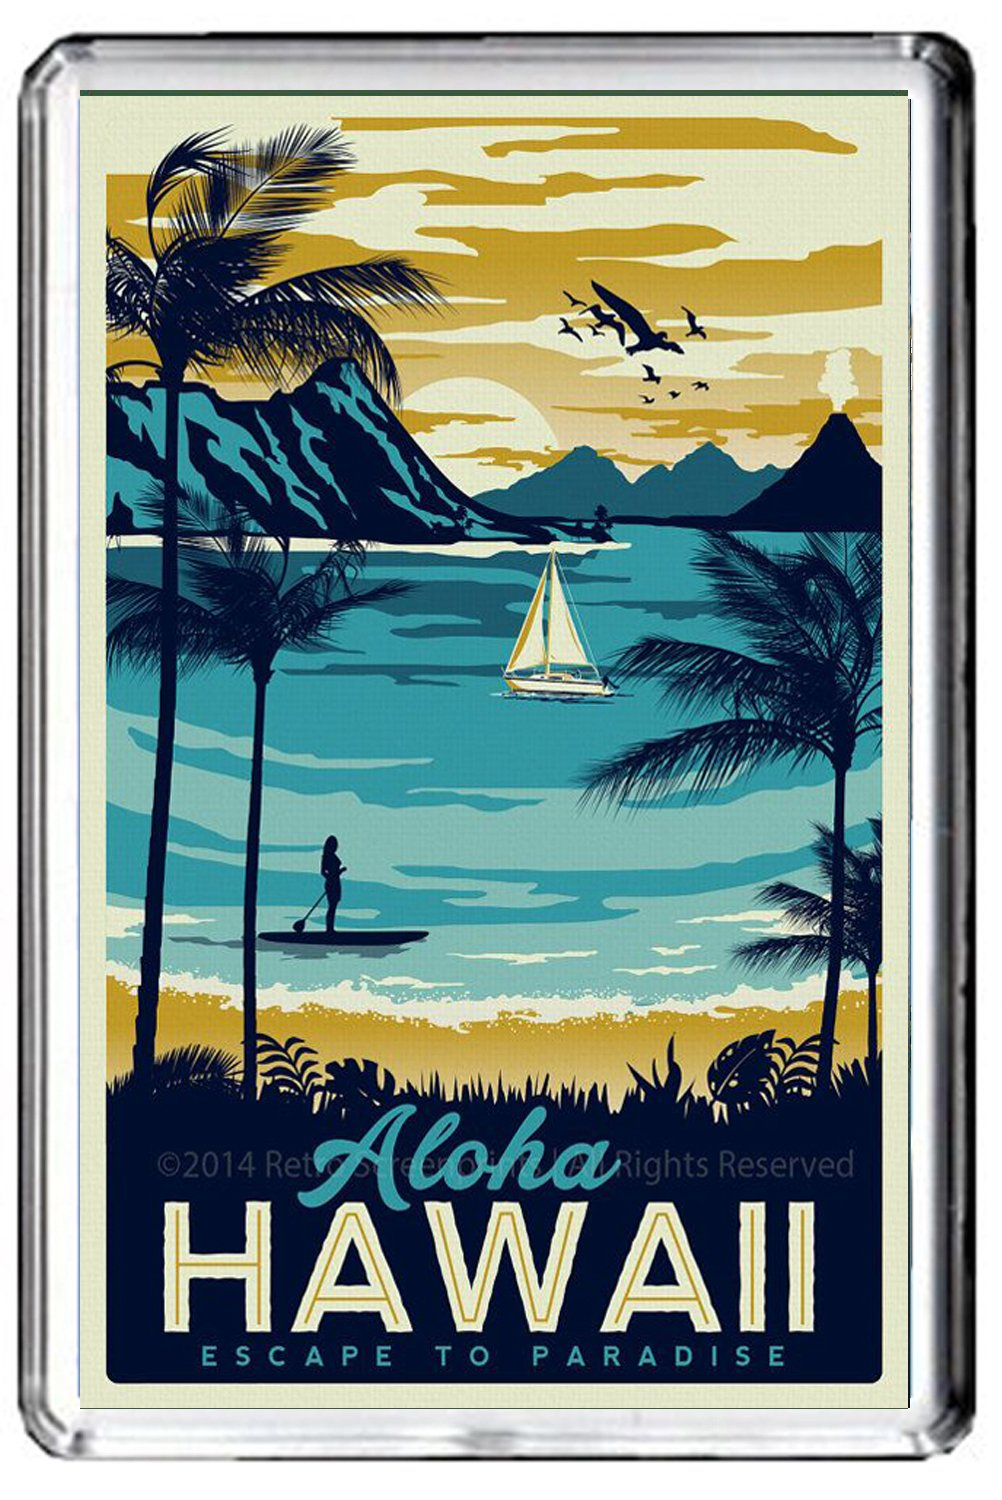 B593 Aloha Hawaii Fridge Magnet USA Vintage Travel Photo Refrigerator Magnet GIFTSCITY